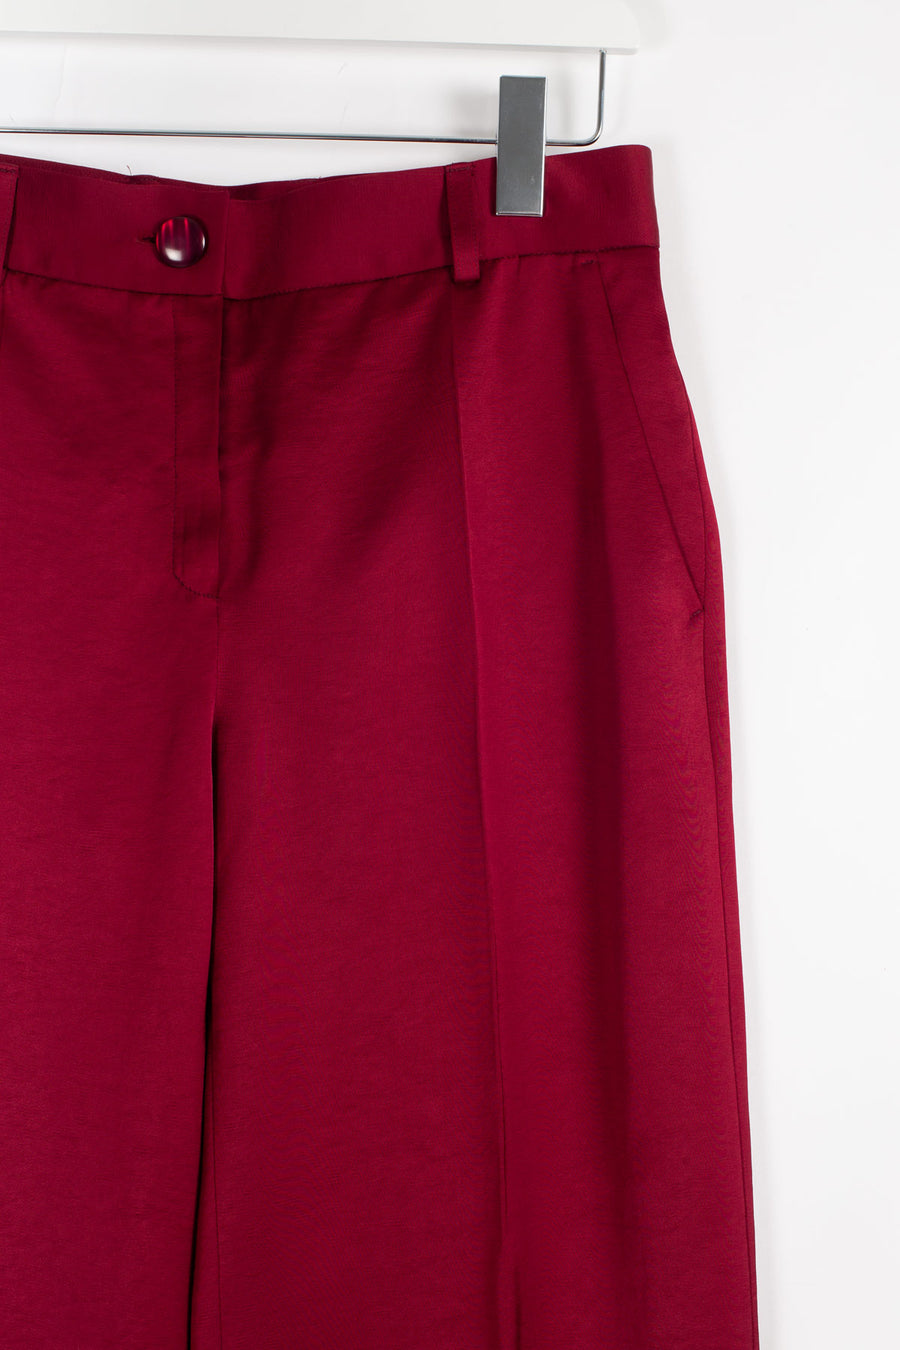 ESMER Viscose Wide-leg Trousers - Burgundy